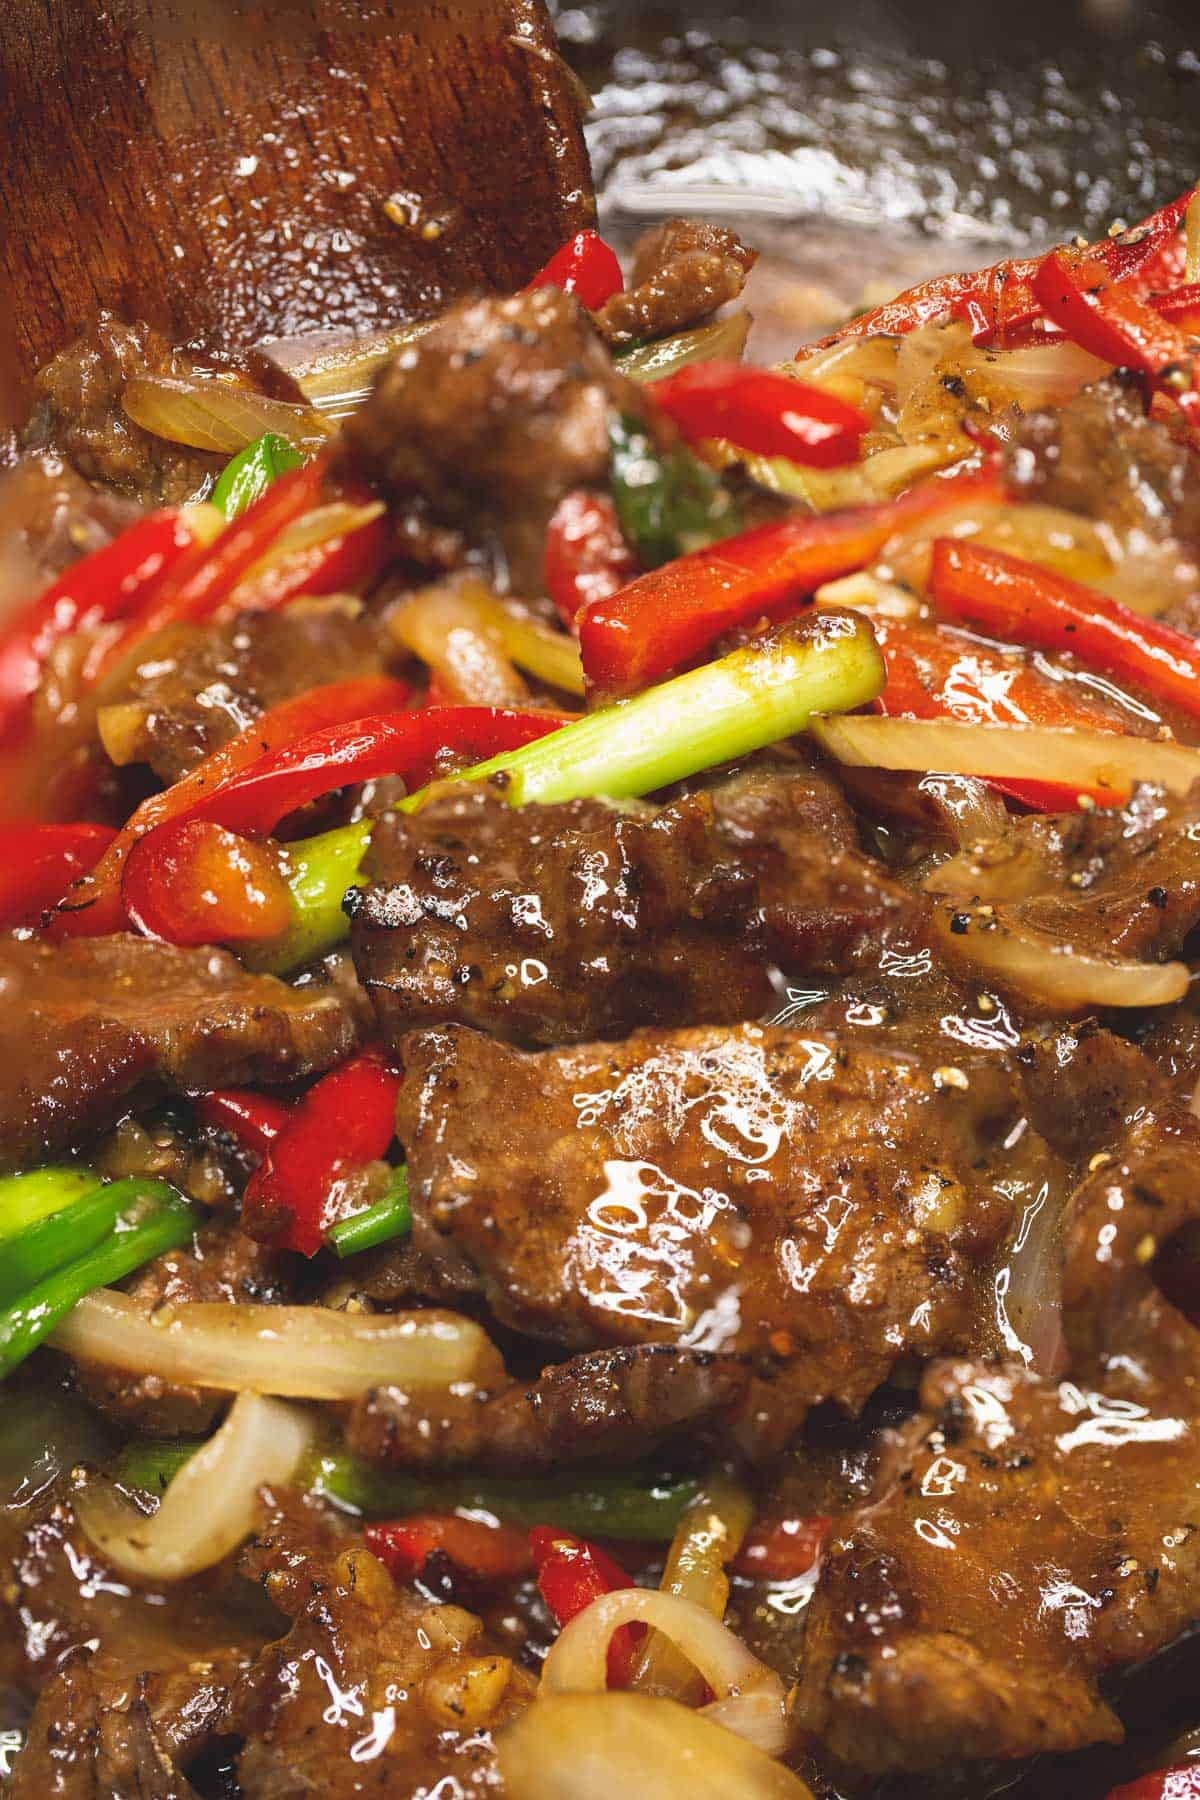 Beef stir fry with onions and peppers in a wok with a wooden spoon.